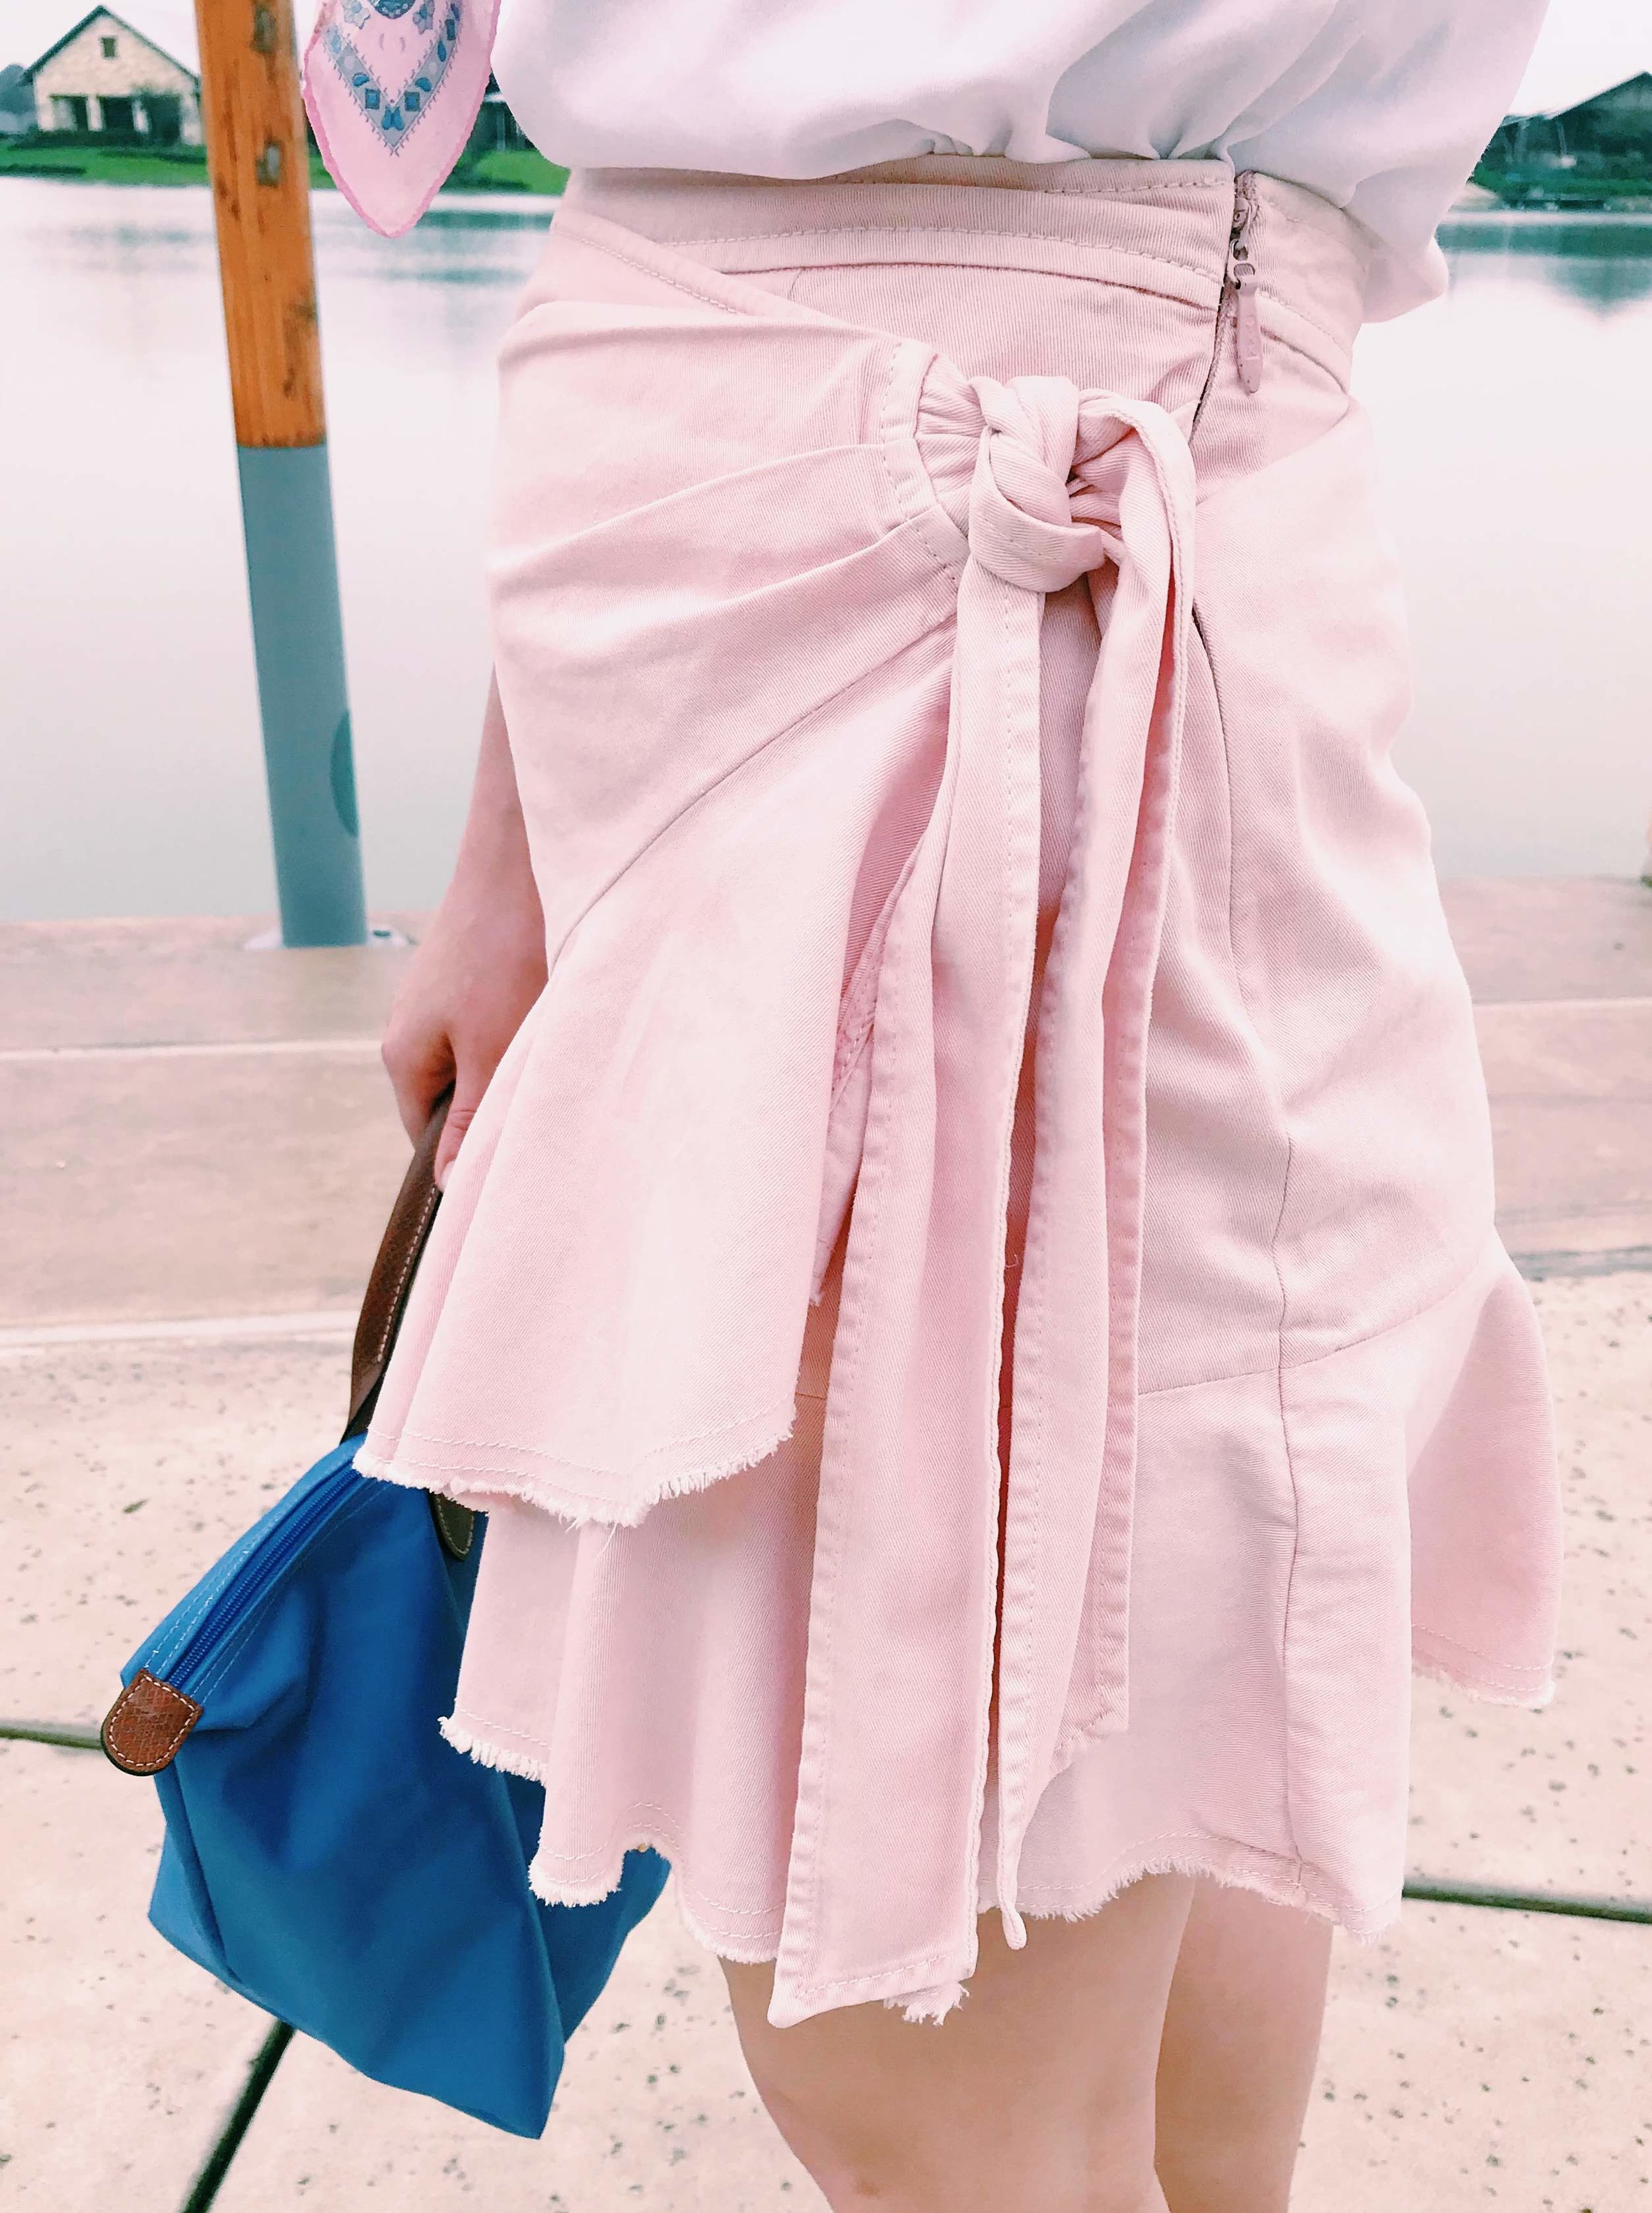 Three Heel Clicks - Flirty Little Pink Skirt (21).jpg